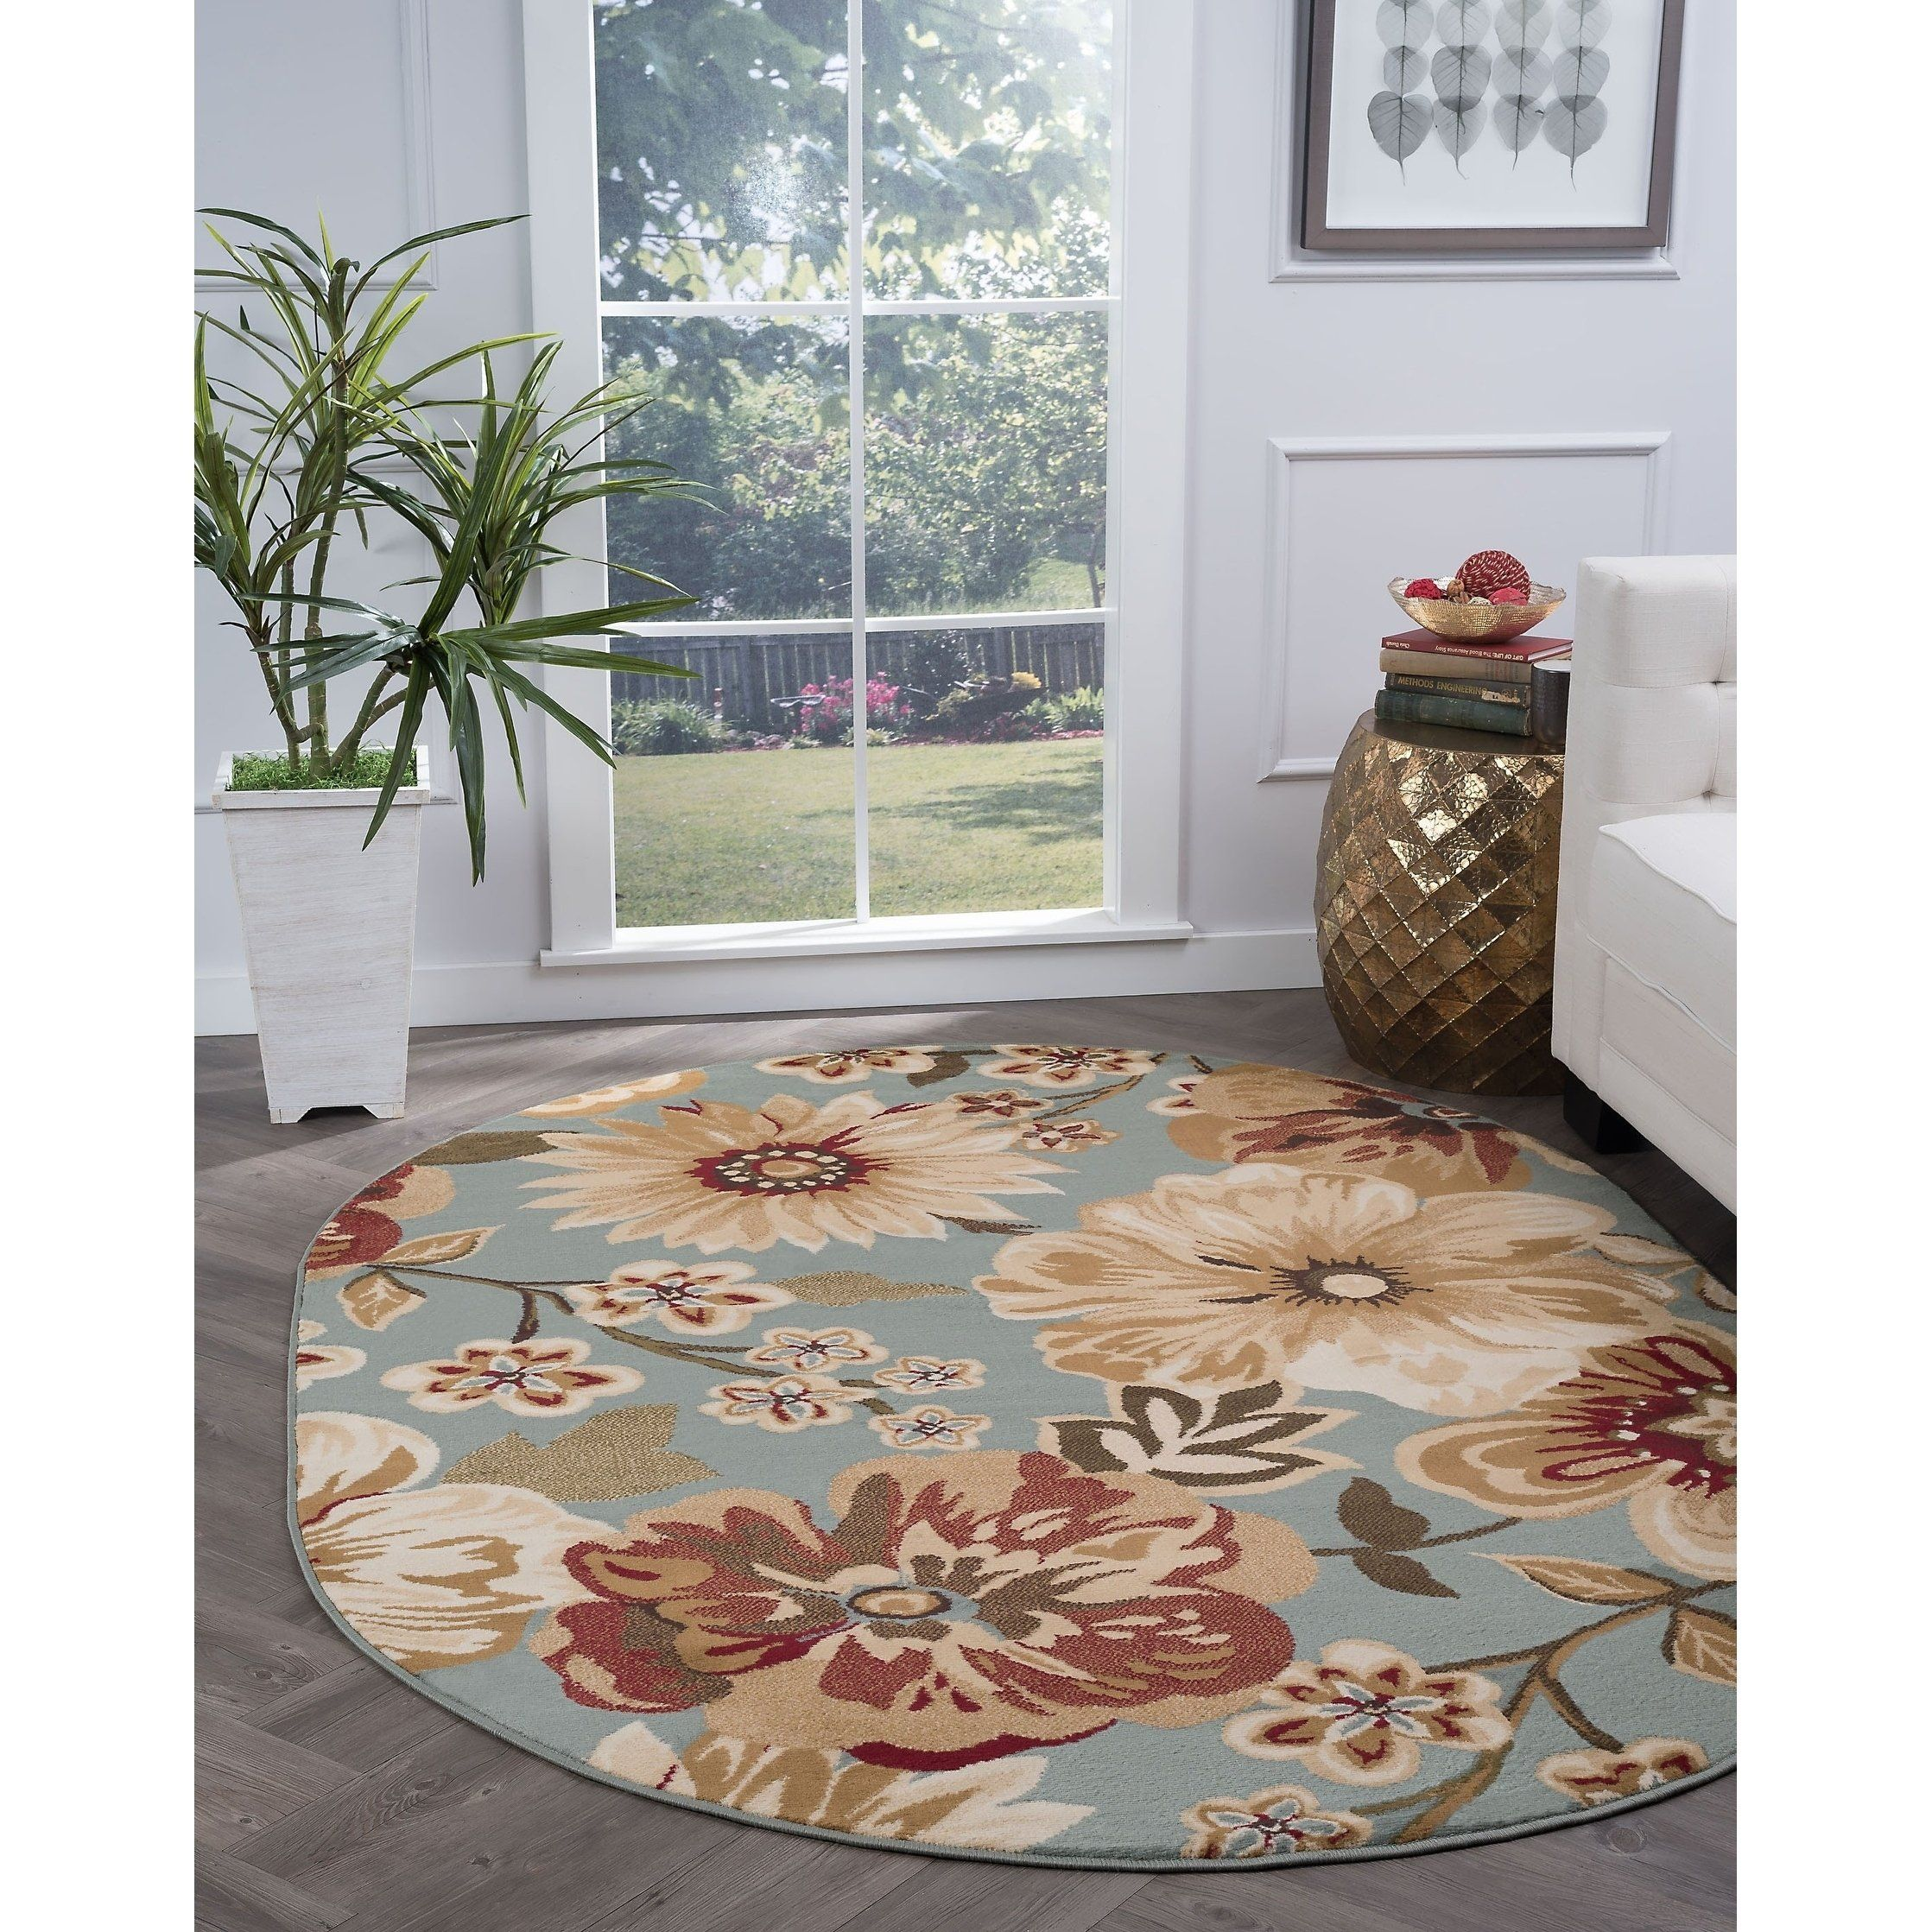 Alise Rugs Lagoon Transitional Floral Oval Area Rug 5 3 X 7 3 Blue 5 3 X 7 3 Moderate Traffic Oval Area Rug Area Rugs Transitional Area Rugs